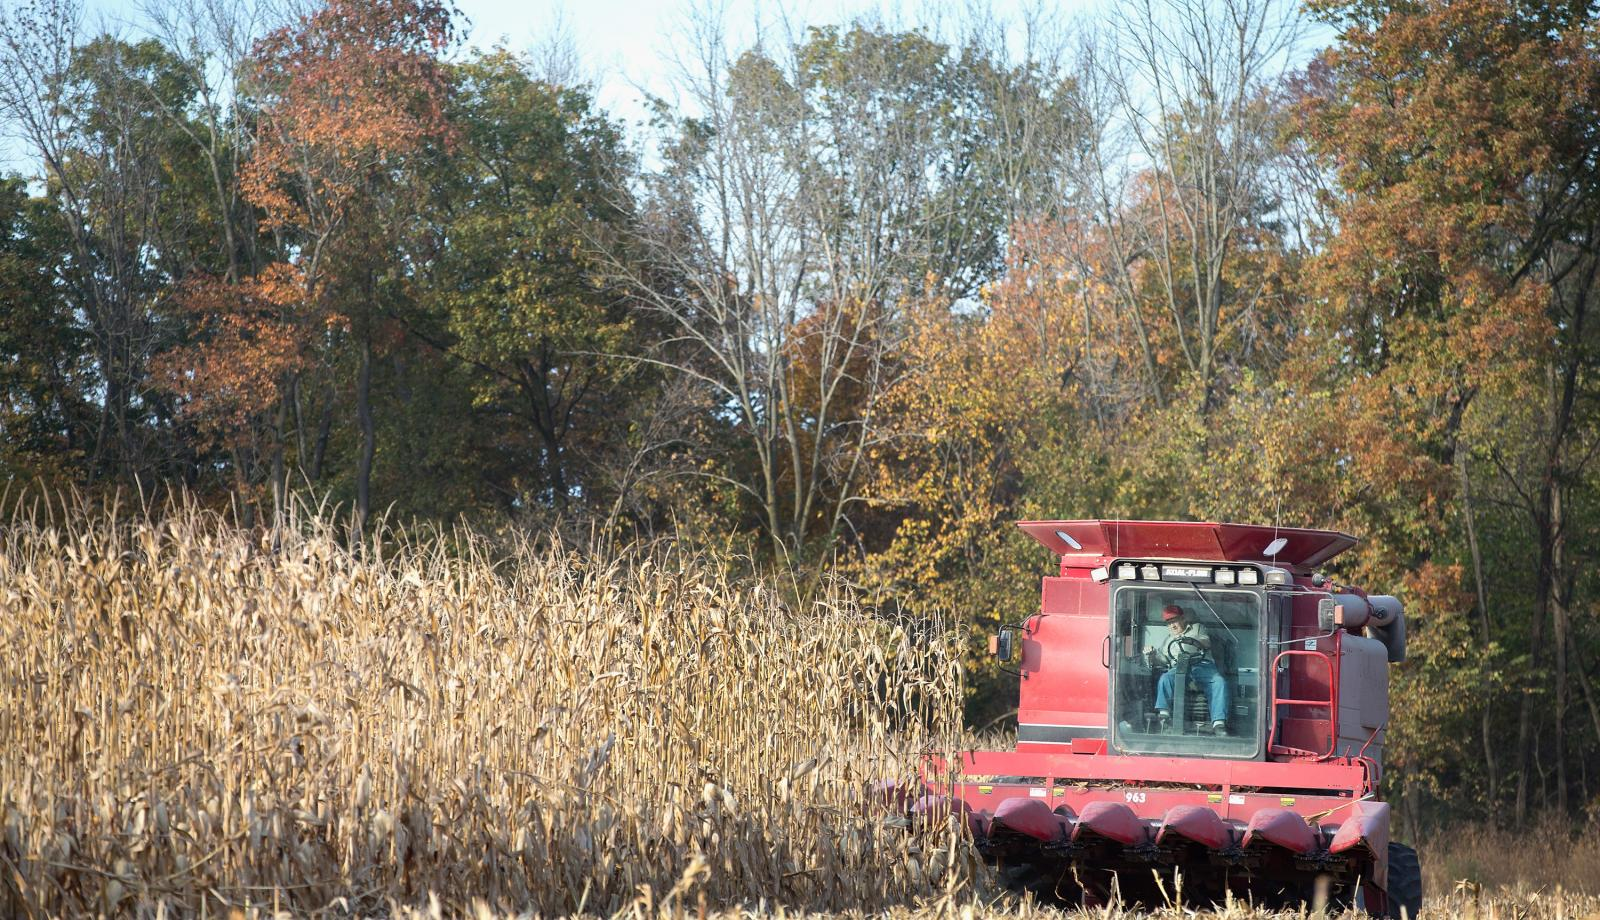 As biodiversity declines on corn farms, pest problems grow